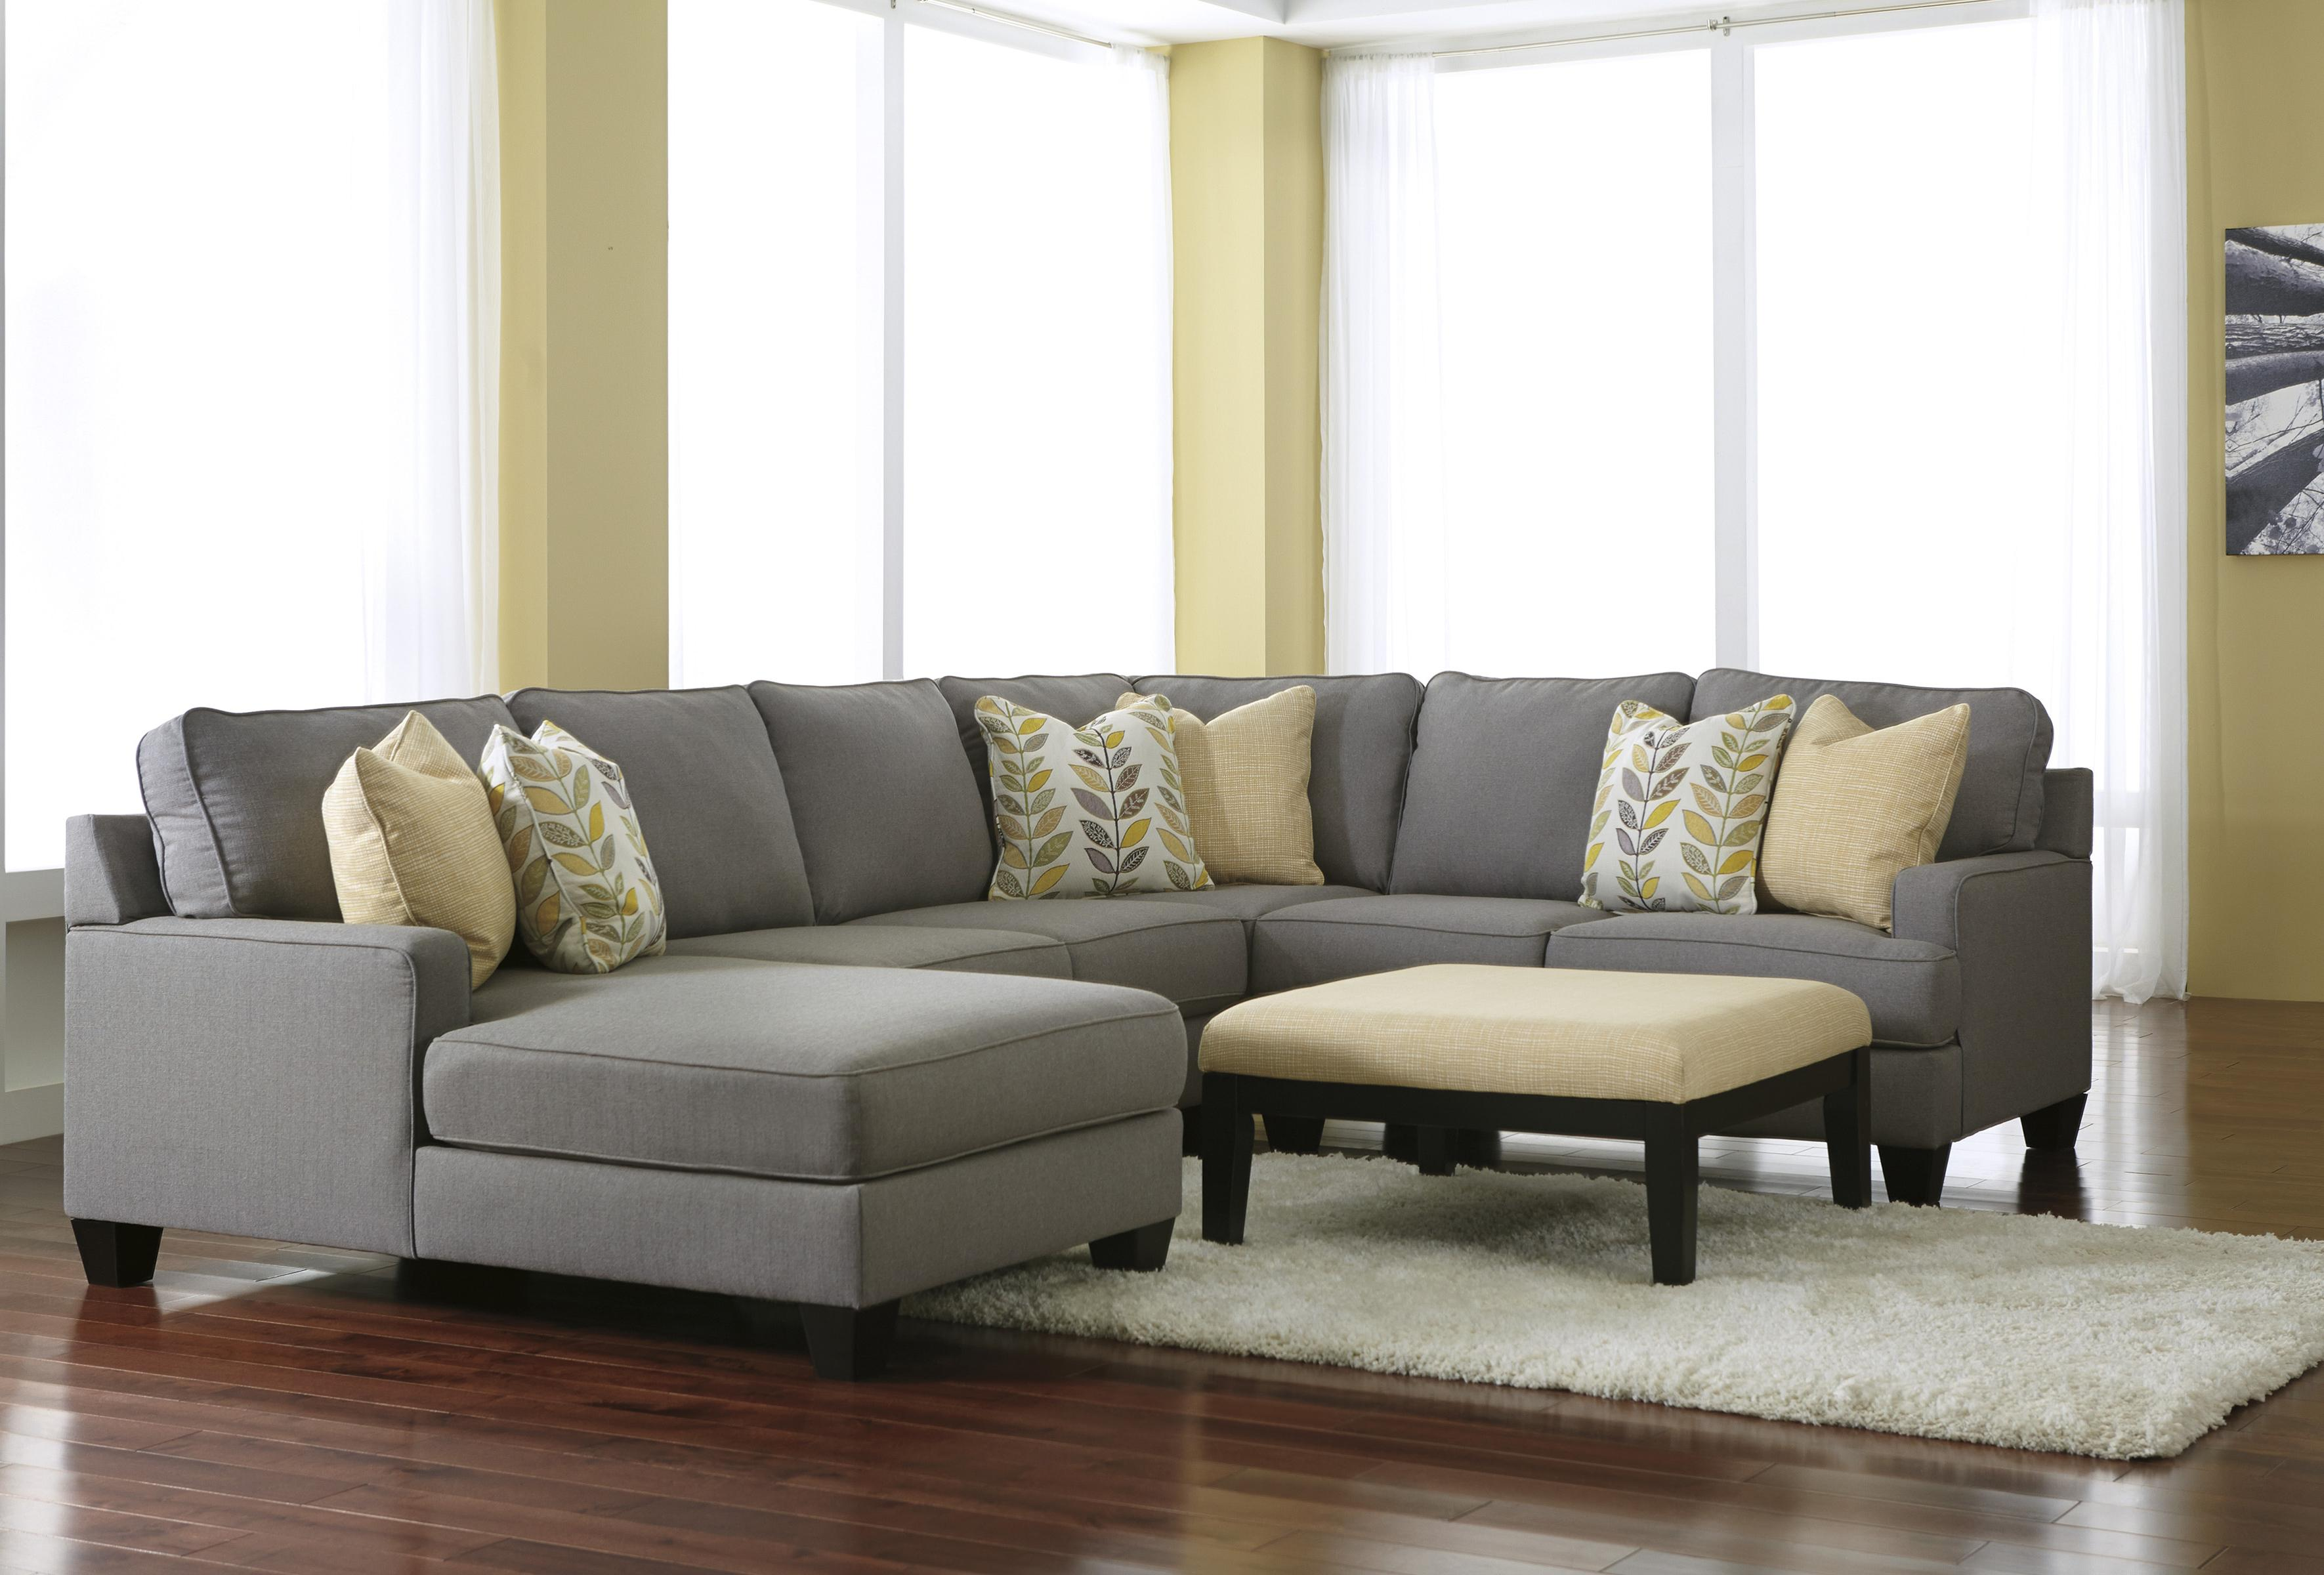 Signature Design by Ashley Chamberly - Alloy Stationary Living Room Group - Item Number: 24302 Living Room Group 6